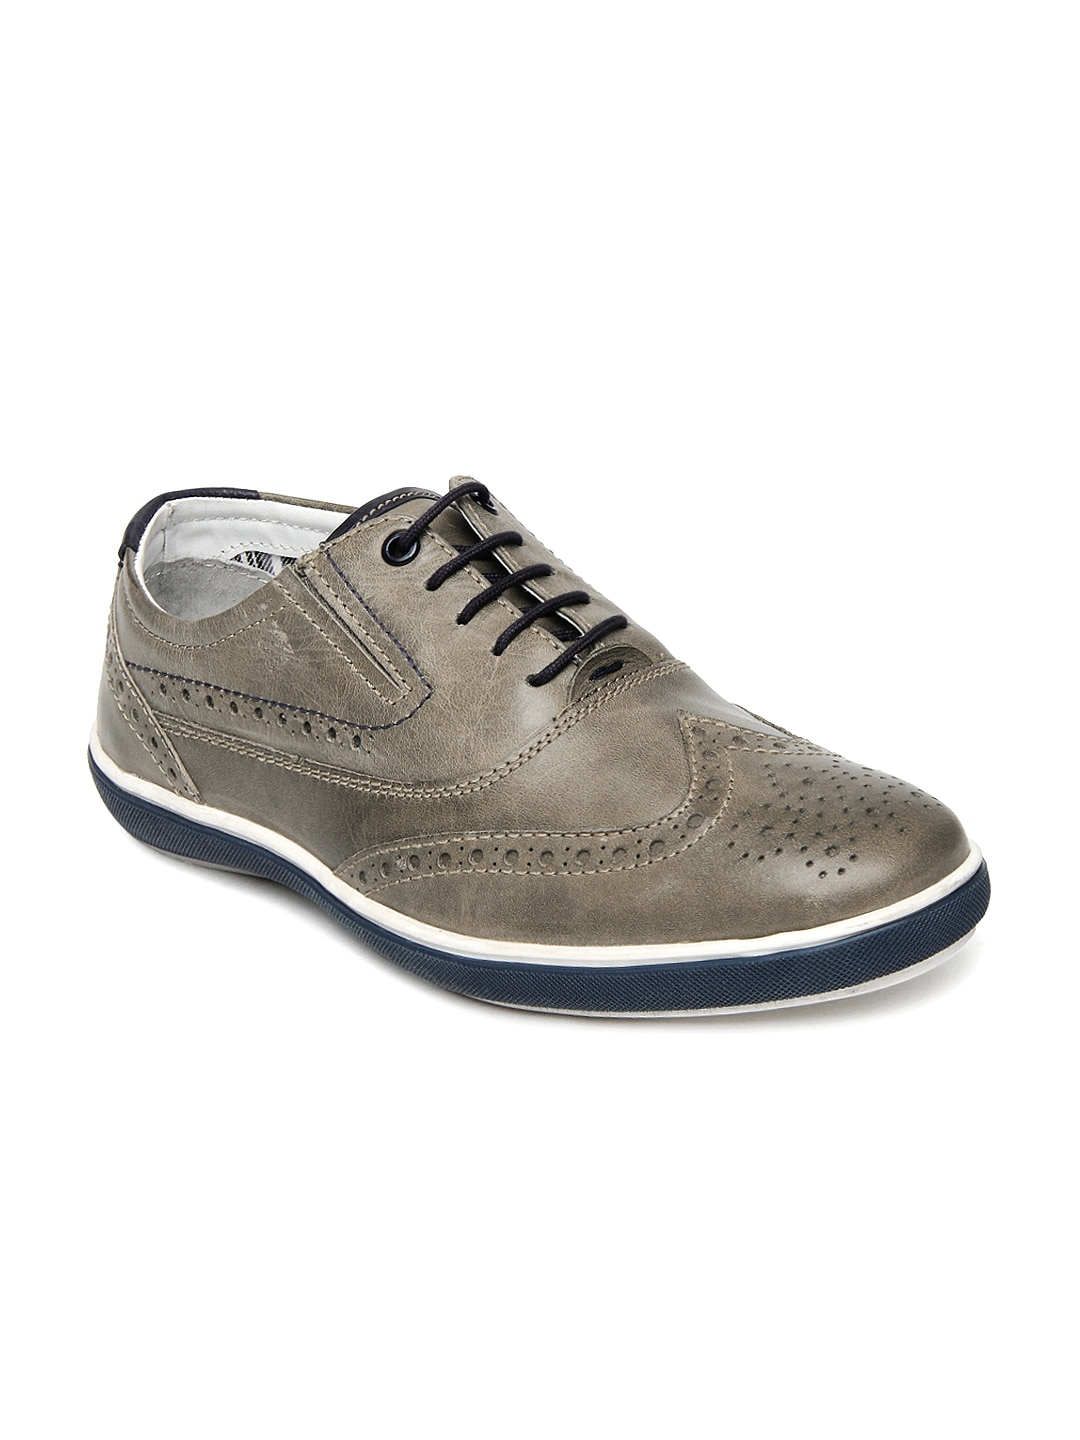 allen solly brown leather casual shoes